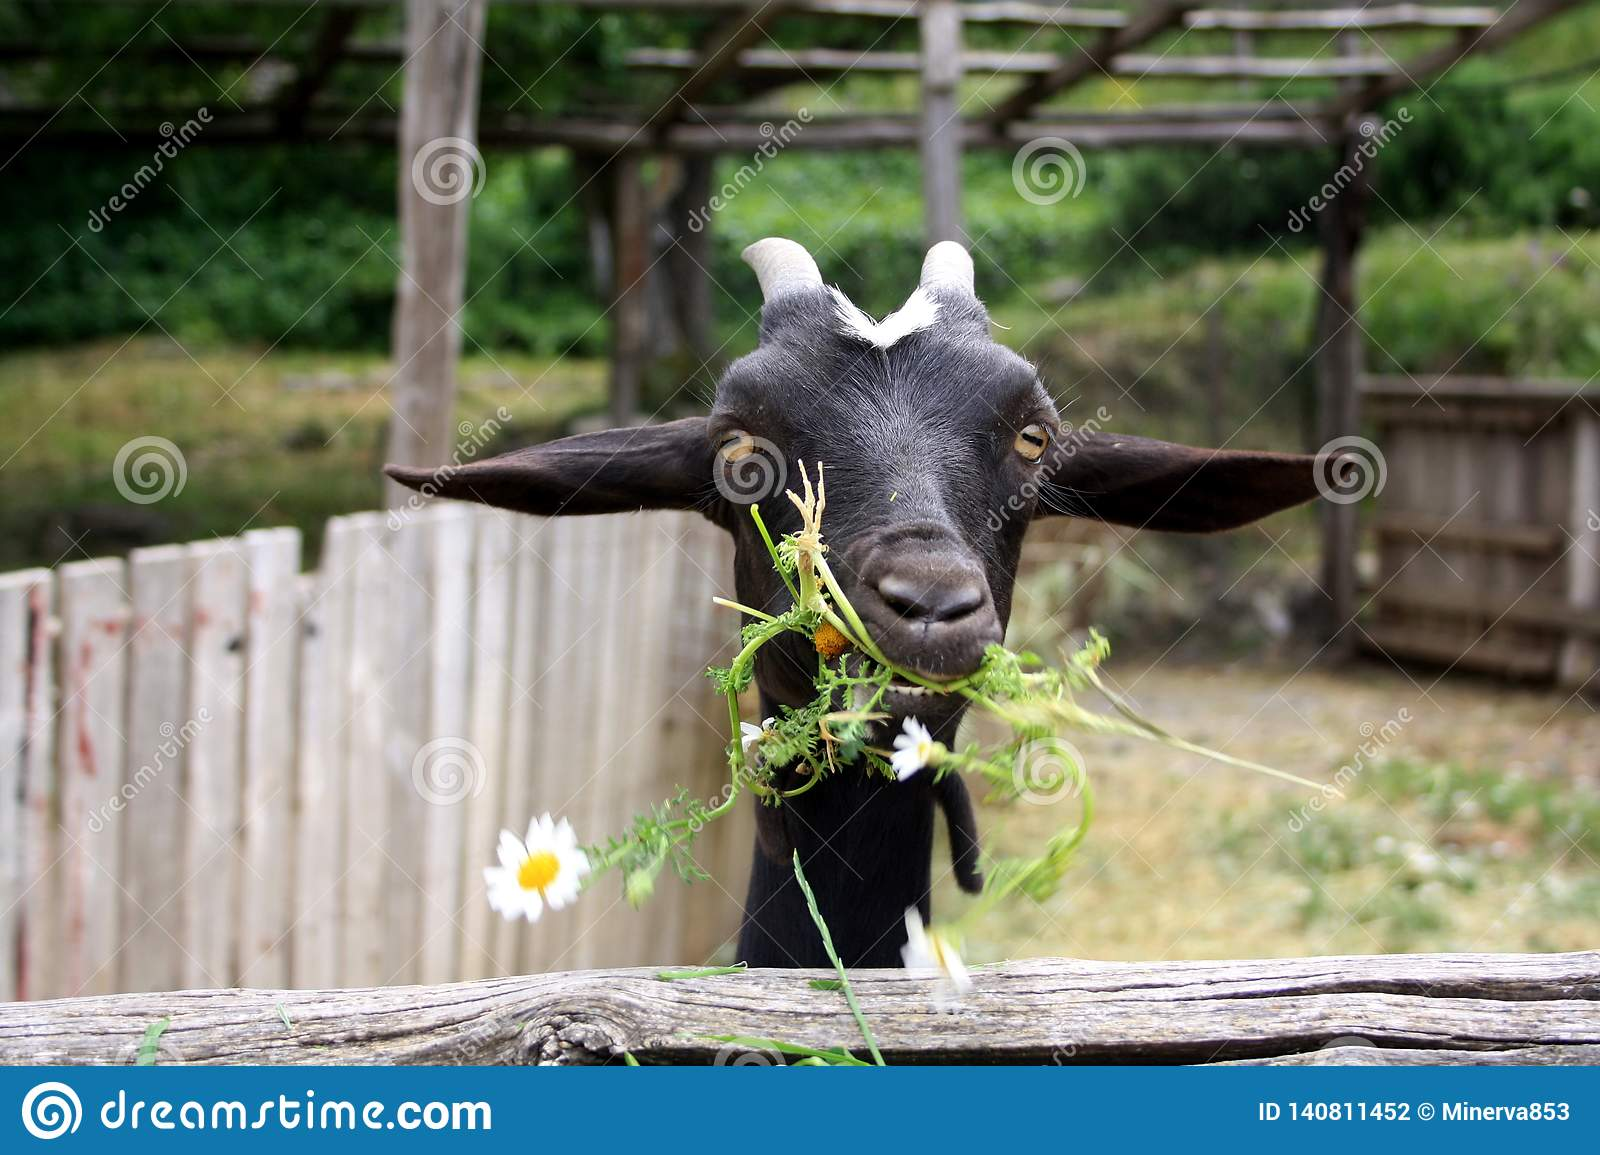 Black goat eating camomiles, grass in the yard.